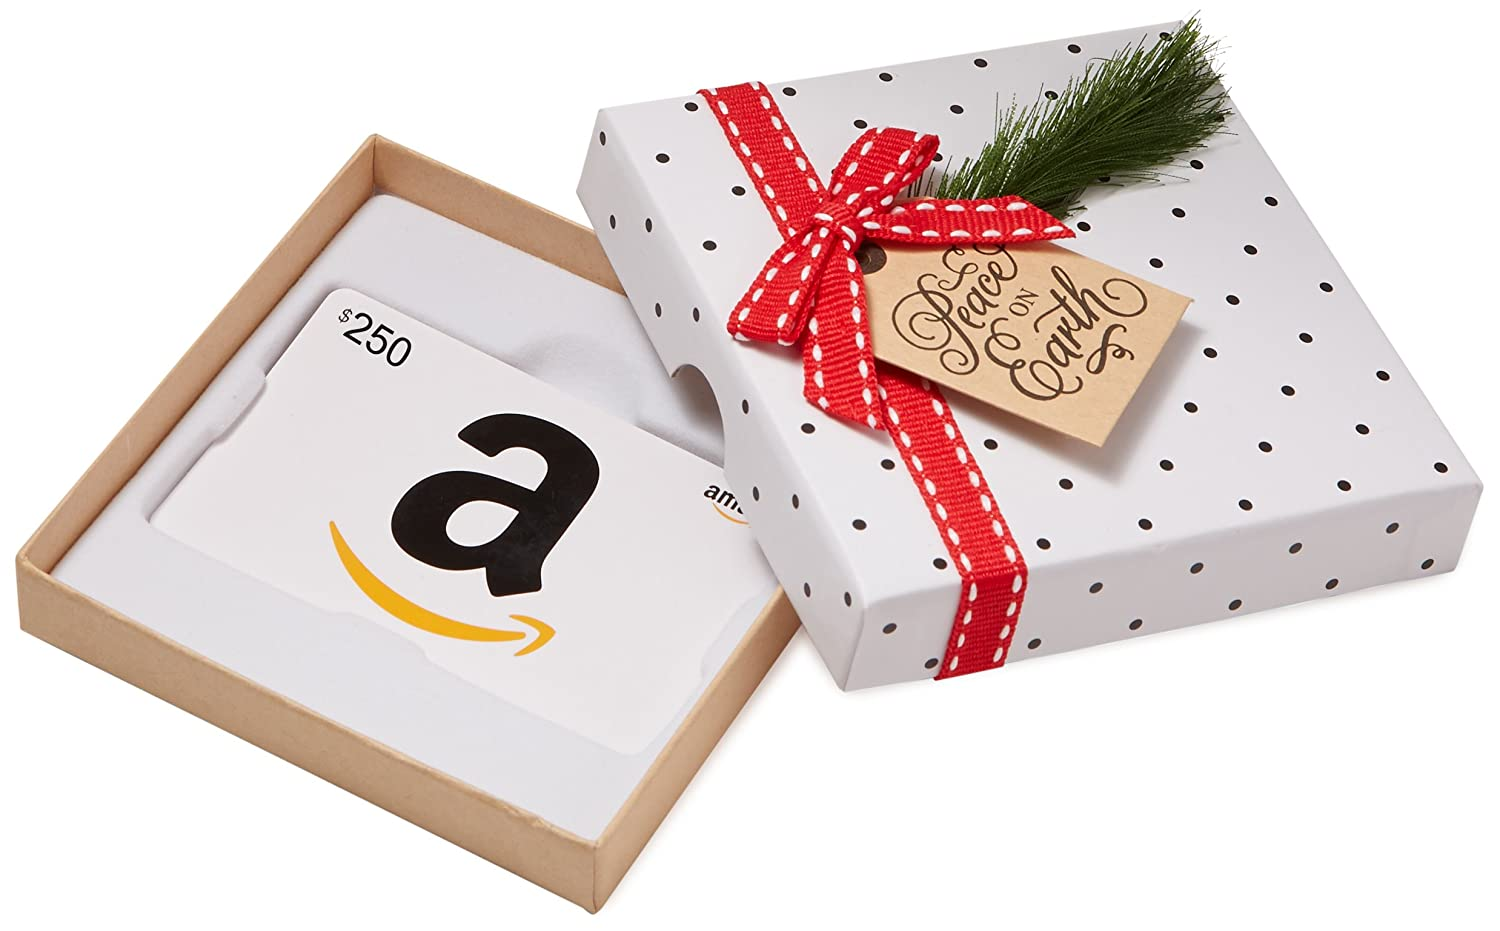 .com Gift Card in a Holiday Sprig Box